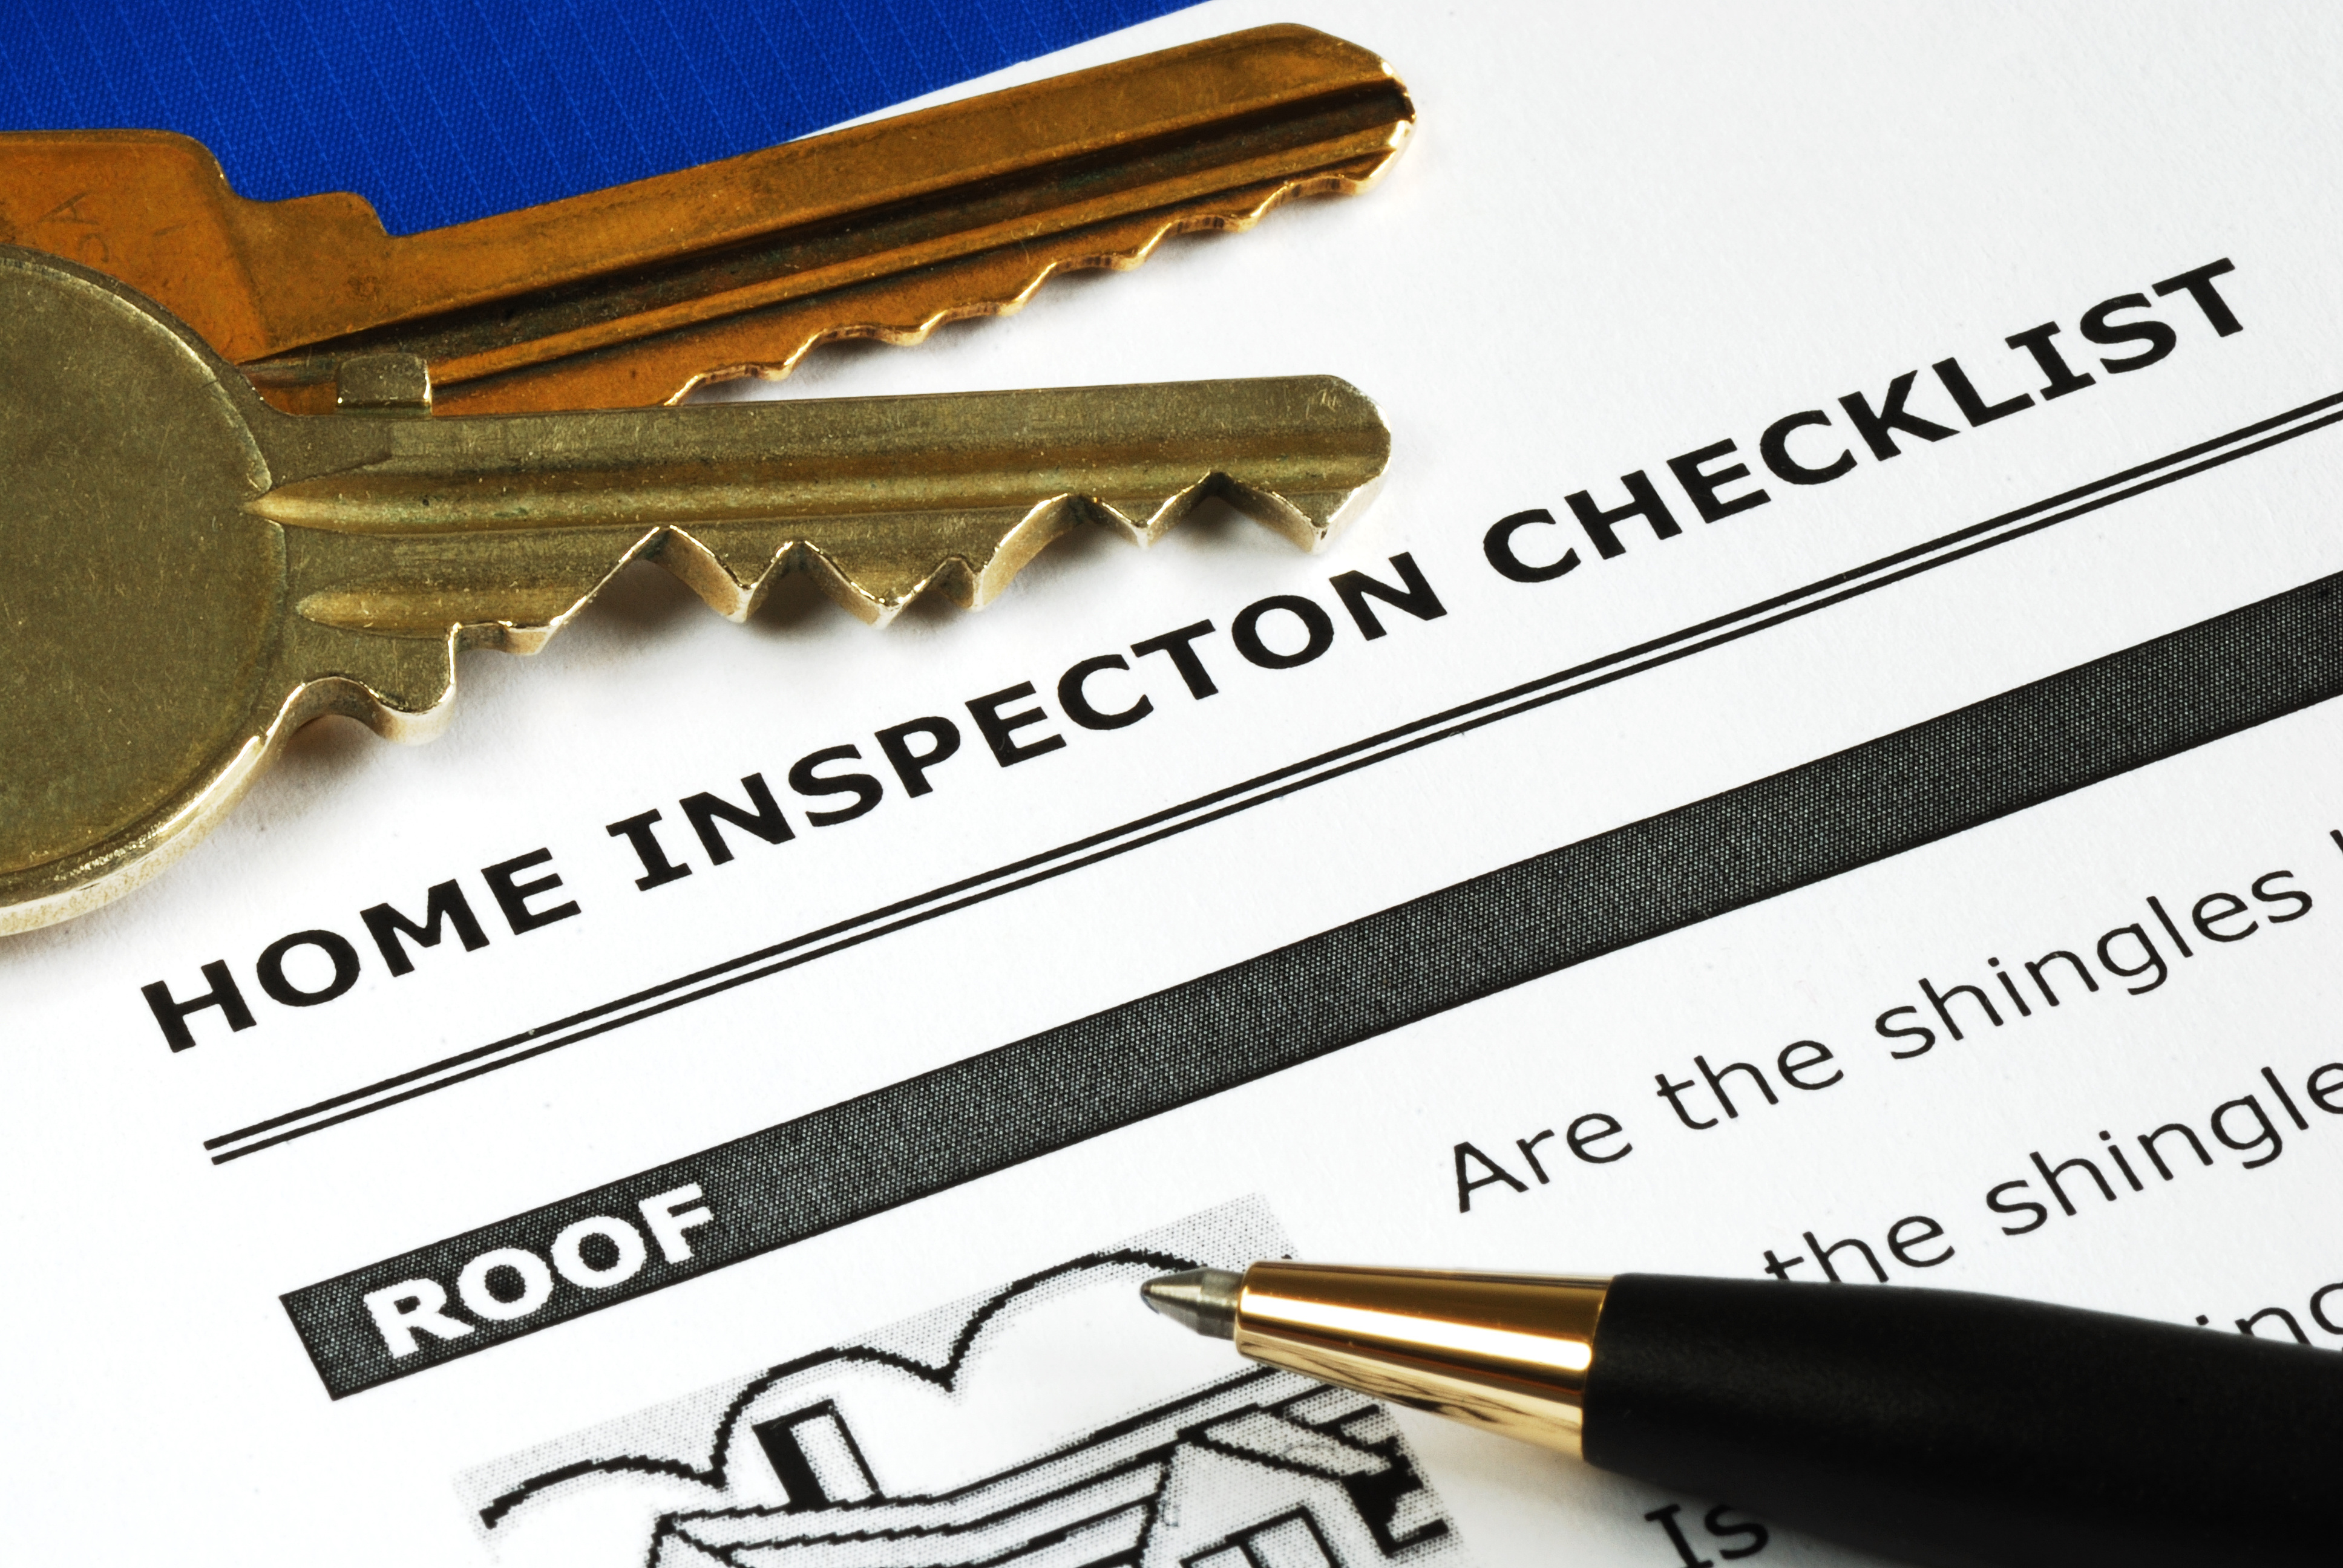 Home inspection checklist What to inspect